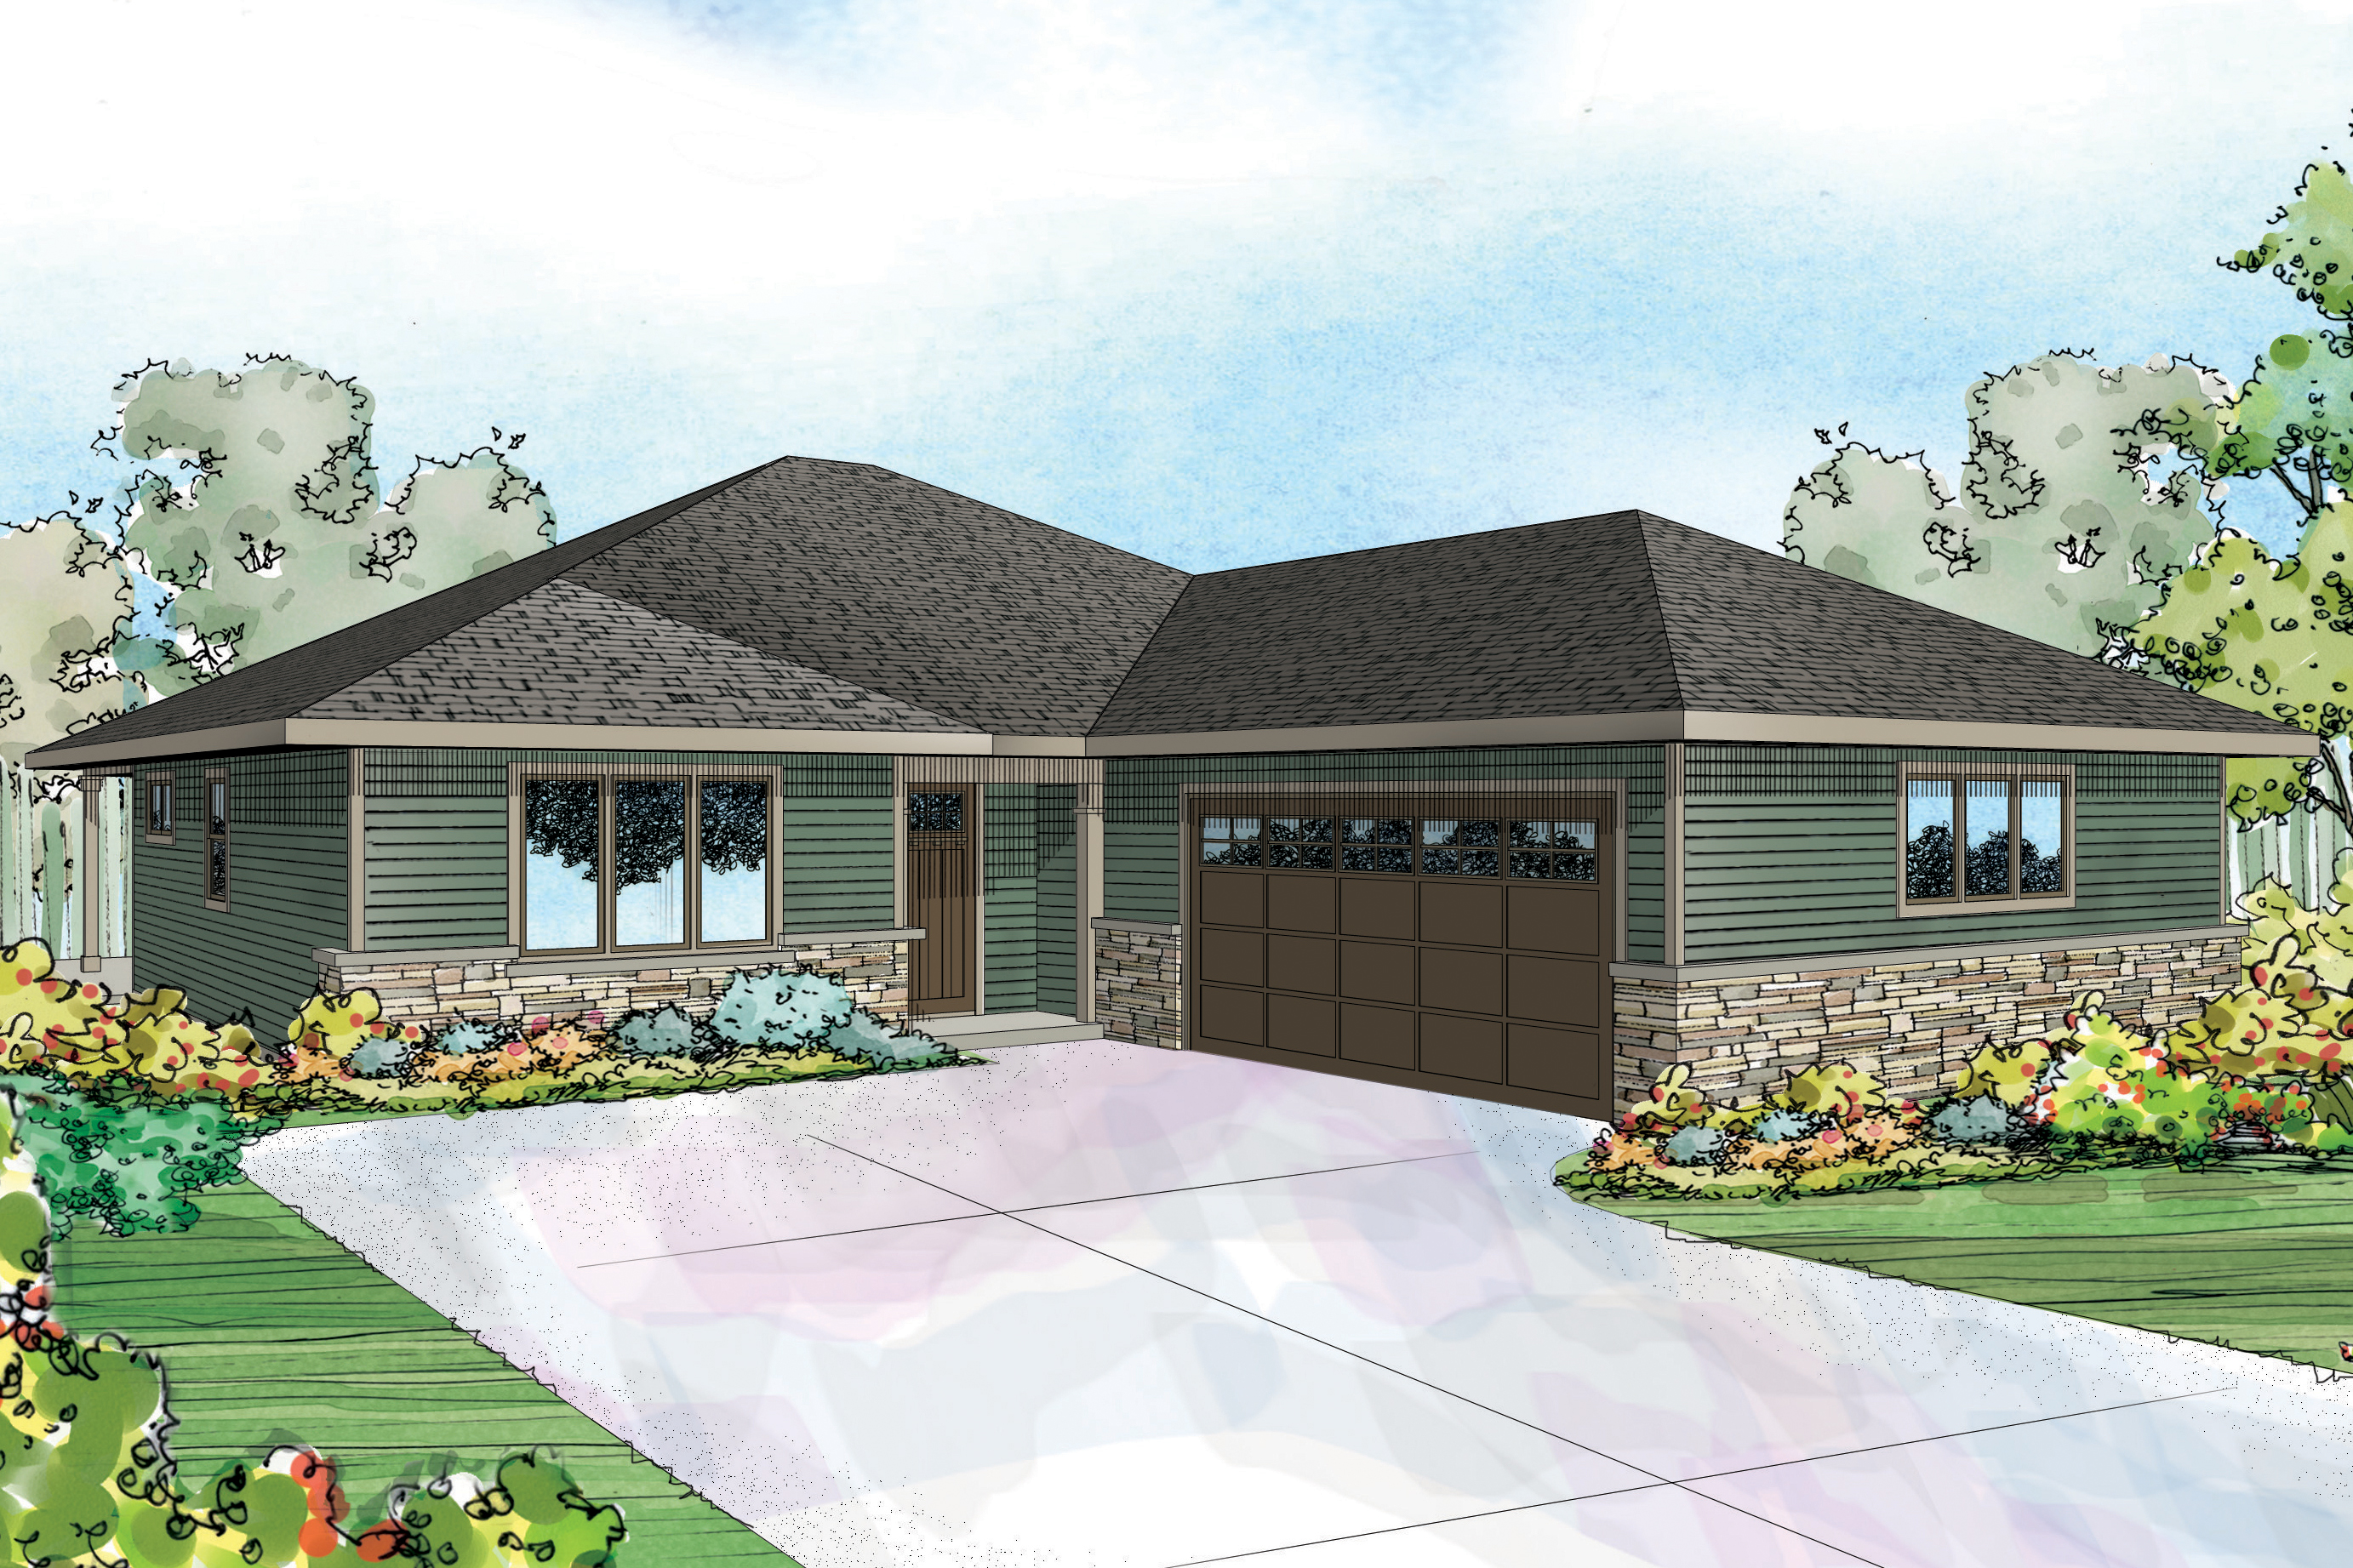 prairie_style_house_plan_denver_30 952_front